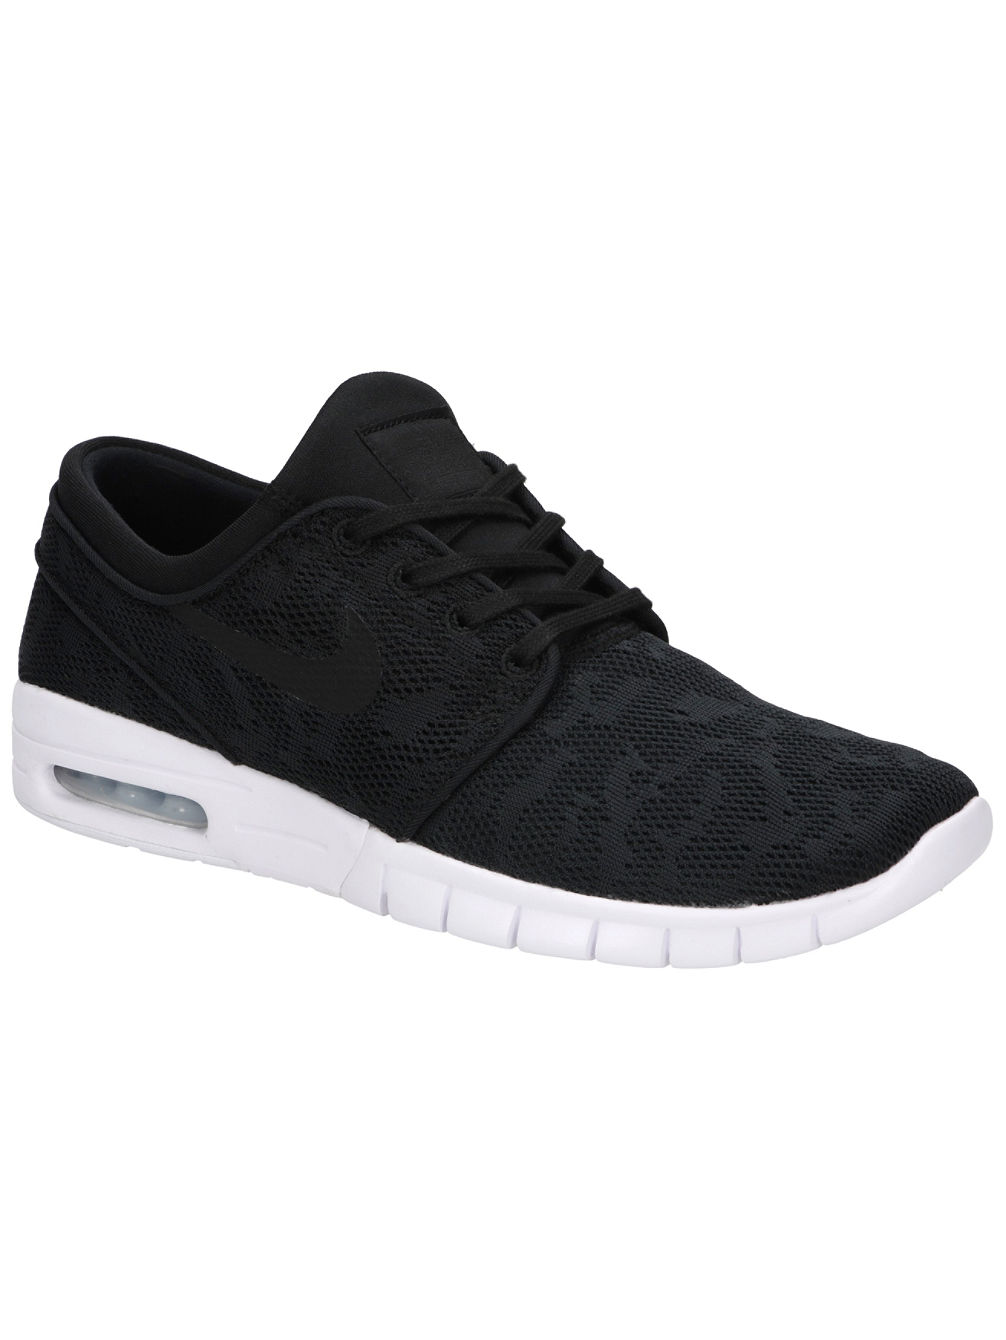 d0a6fafb5a Buy Nike Stefan Janoski Max Sneakers online at Blue Tomato